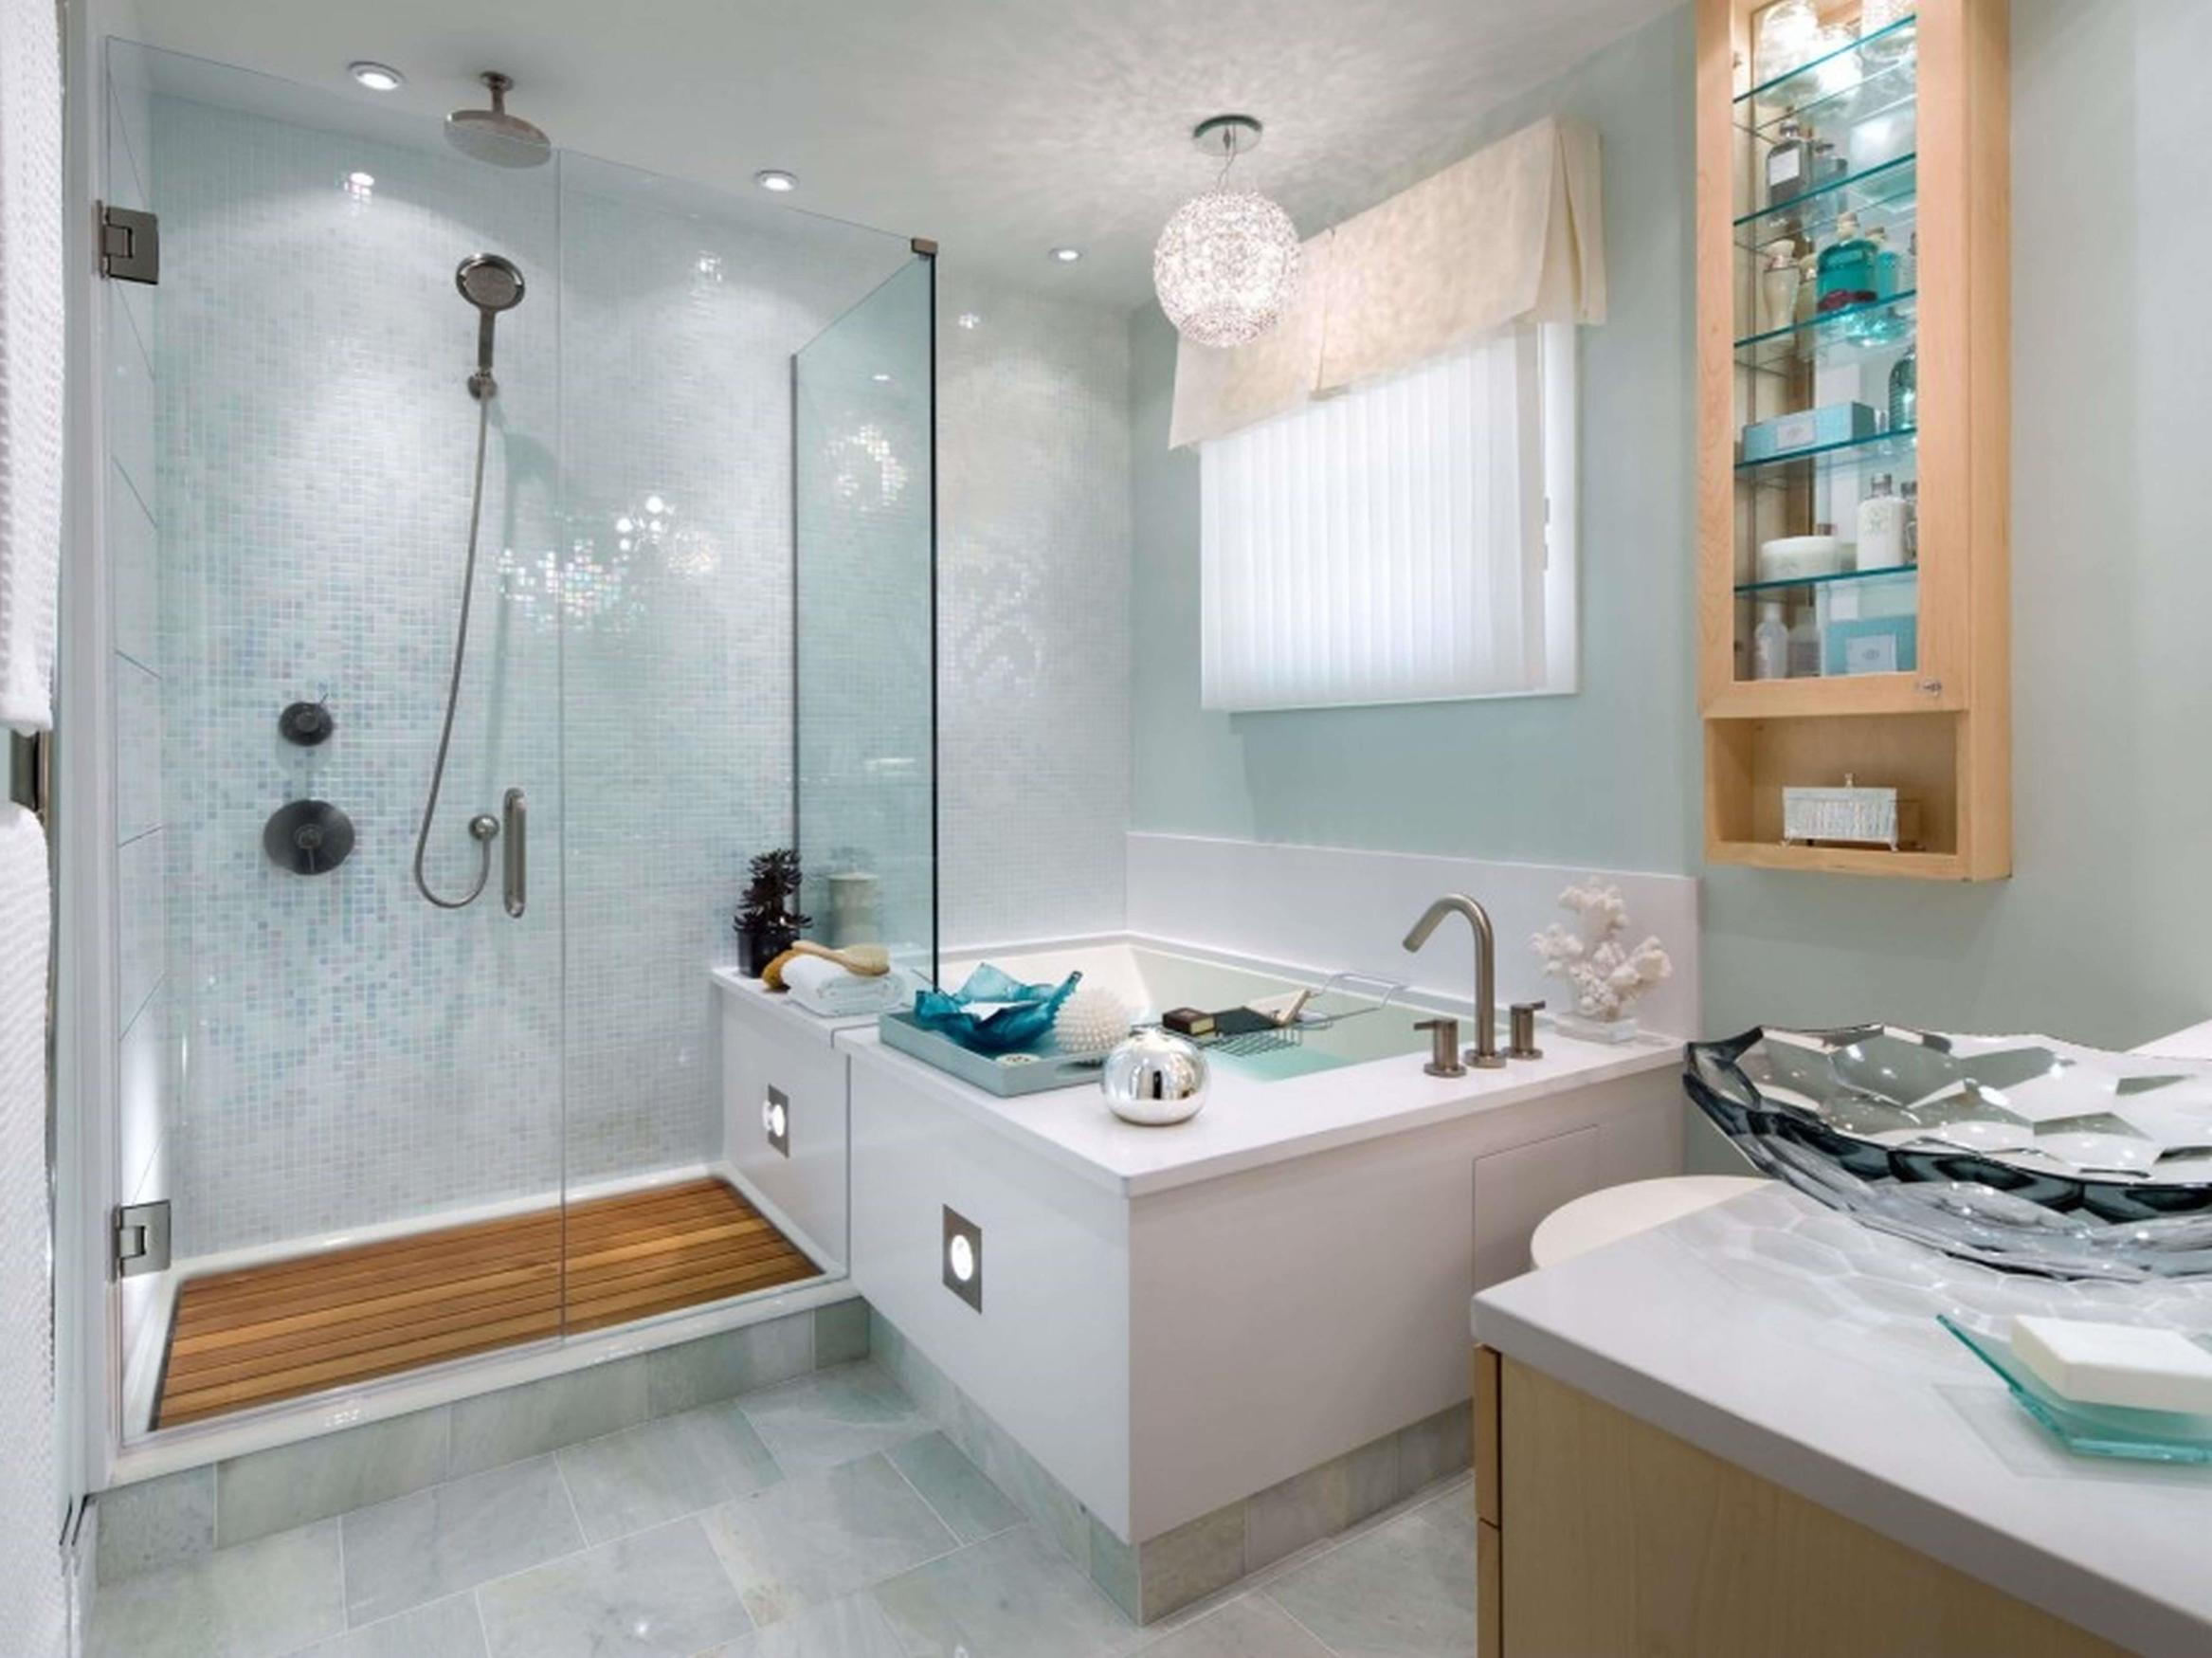 42 Perfect Small Bathroom Decorating Ideas 29